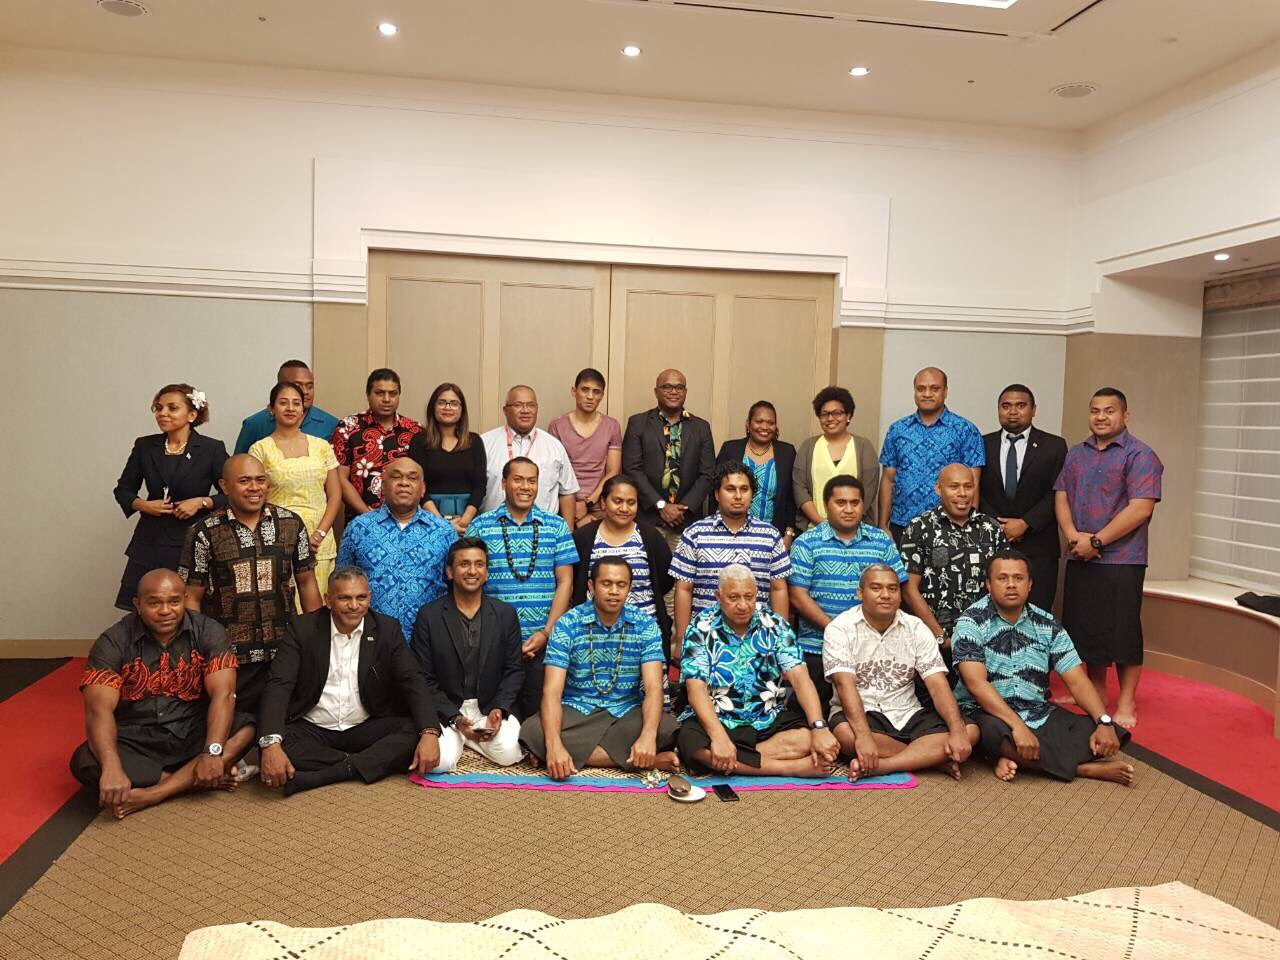 Prime Minister Voreqe Bainimarama with members of the Fijian delegation and Fijian residents in Tokyo, Japan, on May 19, 2018. Photos: DEPTFO News